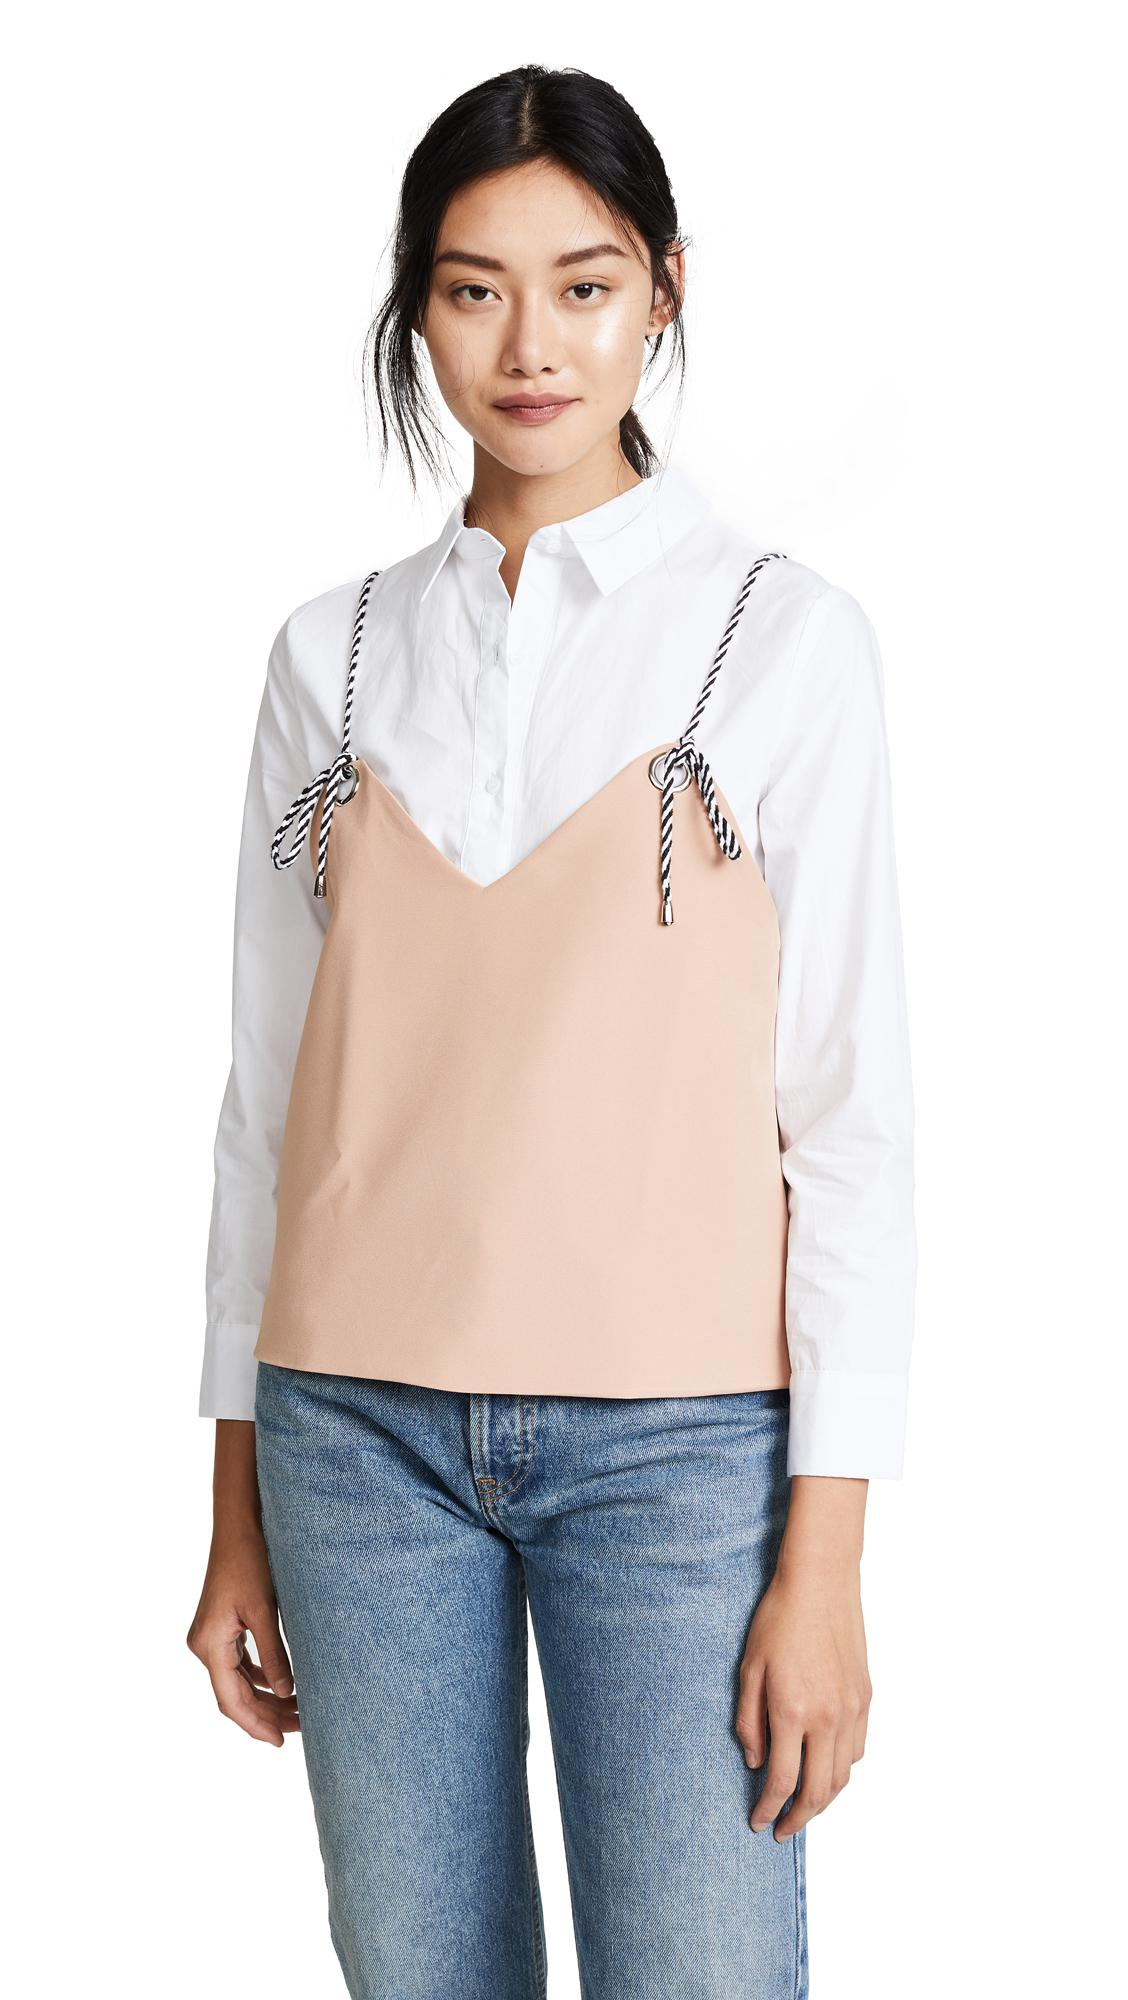 The English Factory Shirt With Cold Shoulder Layered Top Finishline Sale Online Sast Cheap Price Clearance Manchester Discount Store tQK9U